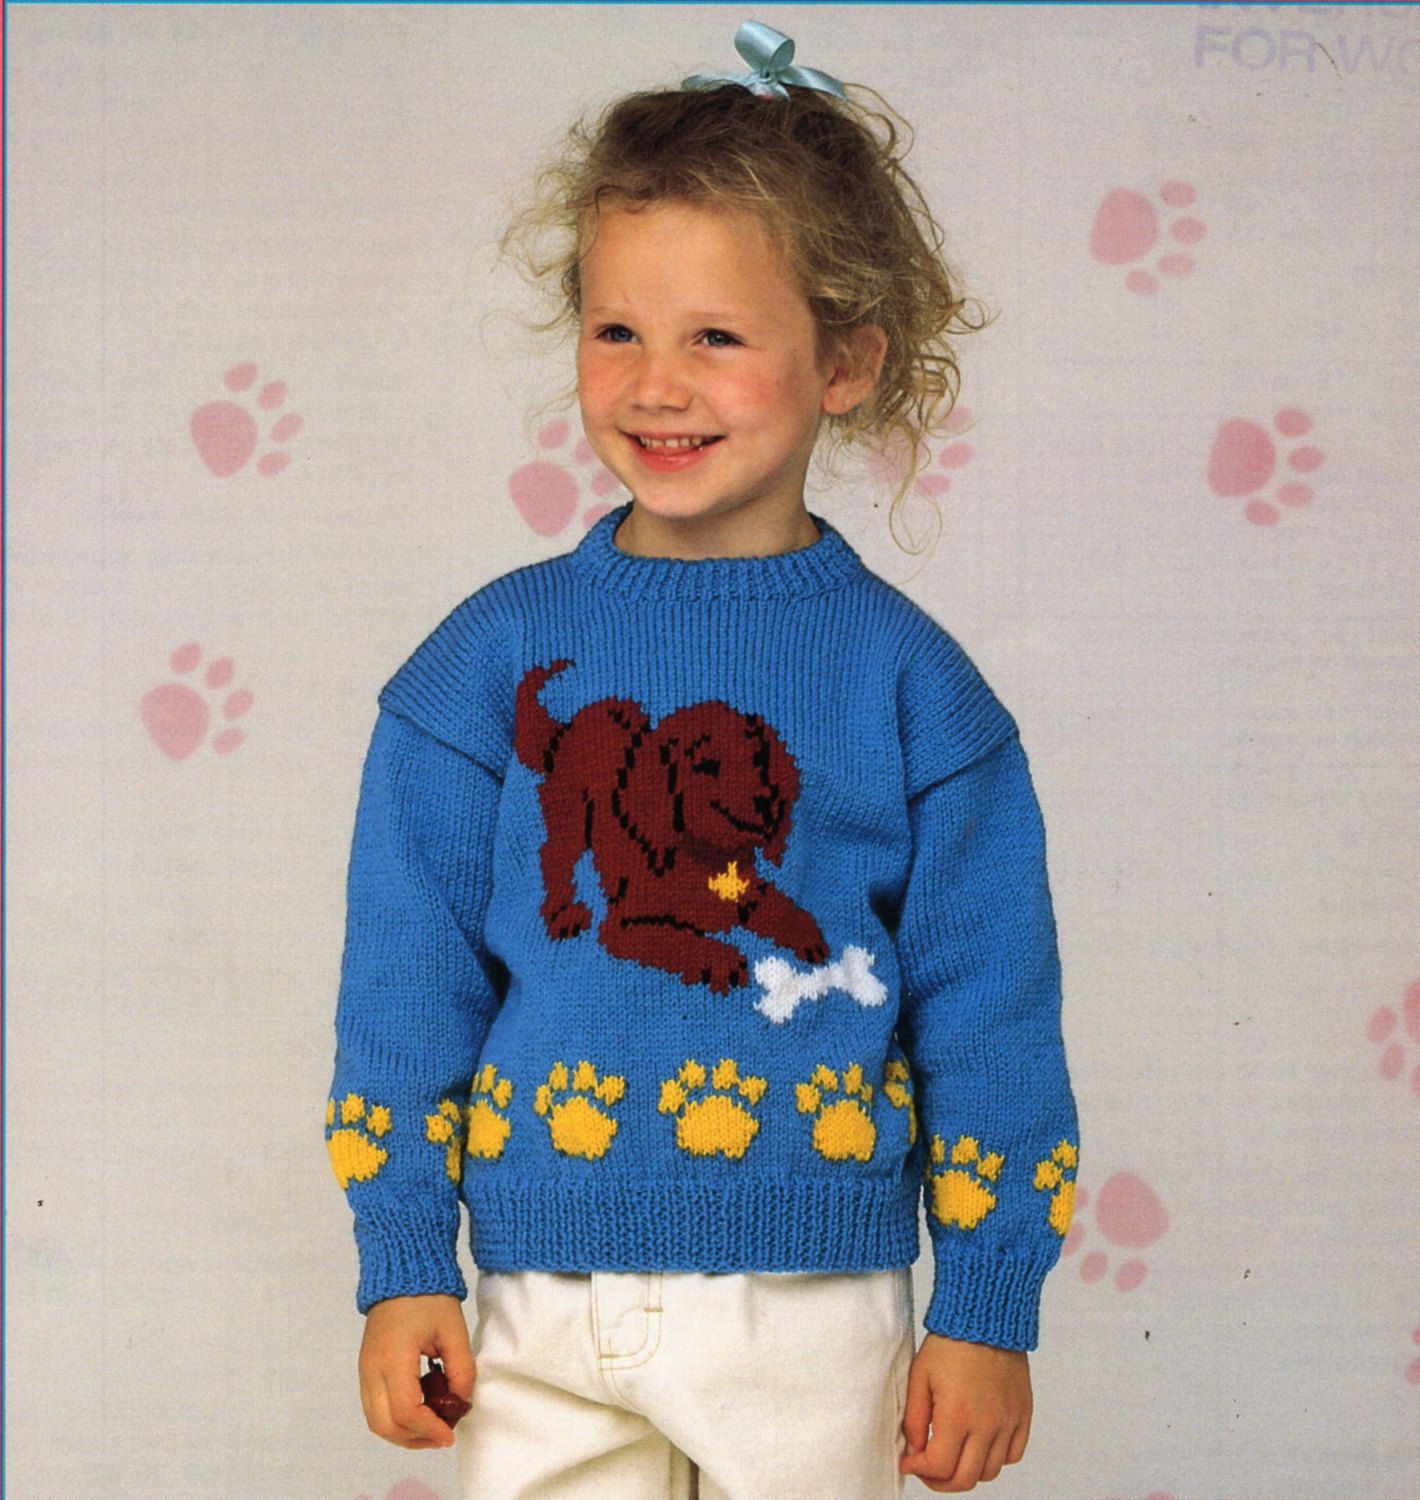 Knitting Patterns For Children s Christmas Jumpers : Childrens Sweater Knitting Pattern PDF childrens jumper puppy motif dog motif...